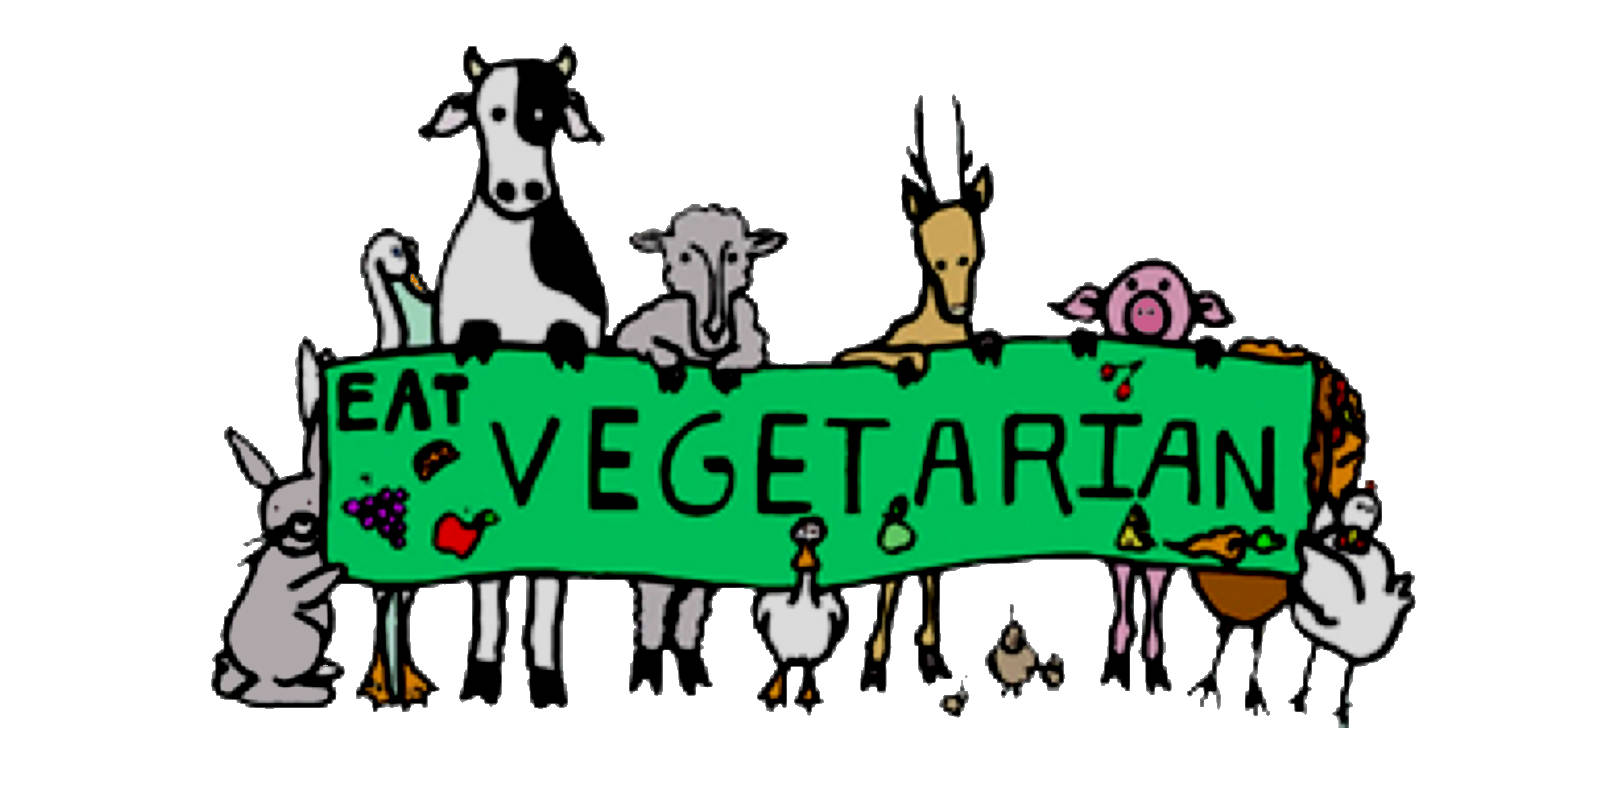 Vegetarian and vegan dating 10